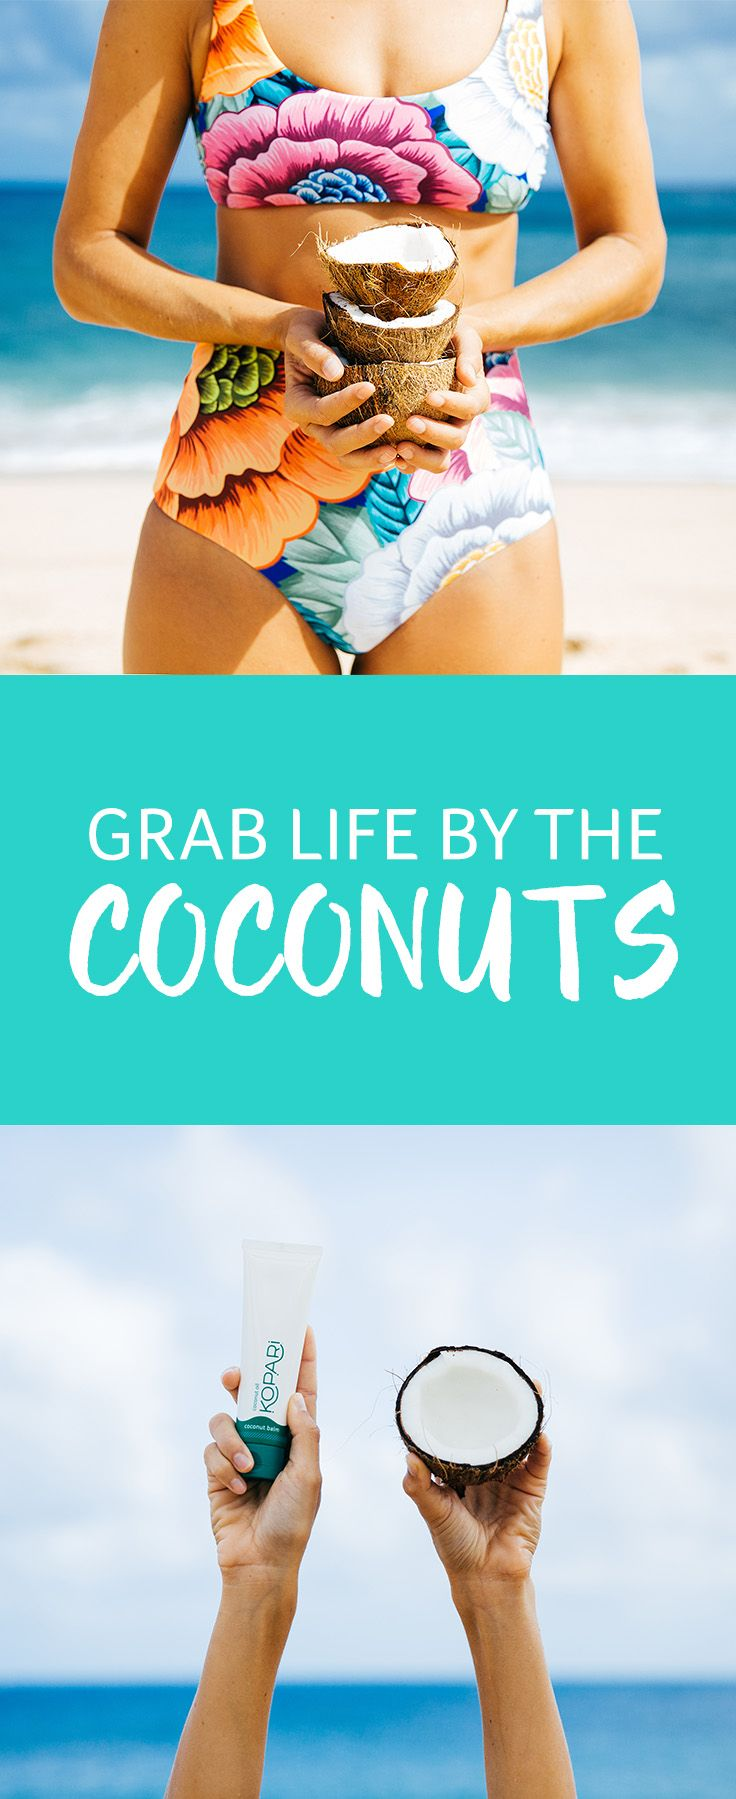 Coconuts are the natural, organic, jack-of-all-fruits. Coconut oil has been used in ancient Hawaiian beauty rituals for centuries, and Kopari uses it in everything they make. Kopari takes coconut oil's many benefits to the next level by incorporating innovative natural ingredients that enhance the performance of traditional coconut oil. Check out the line!